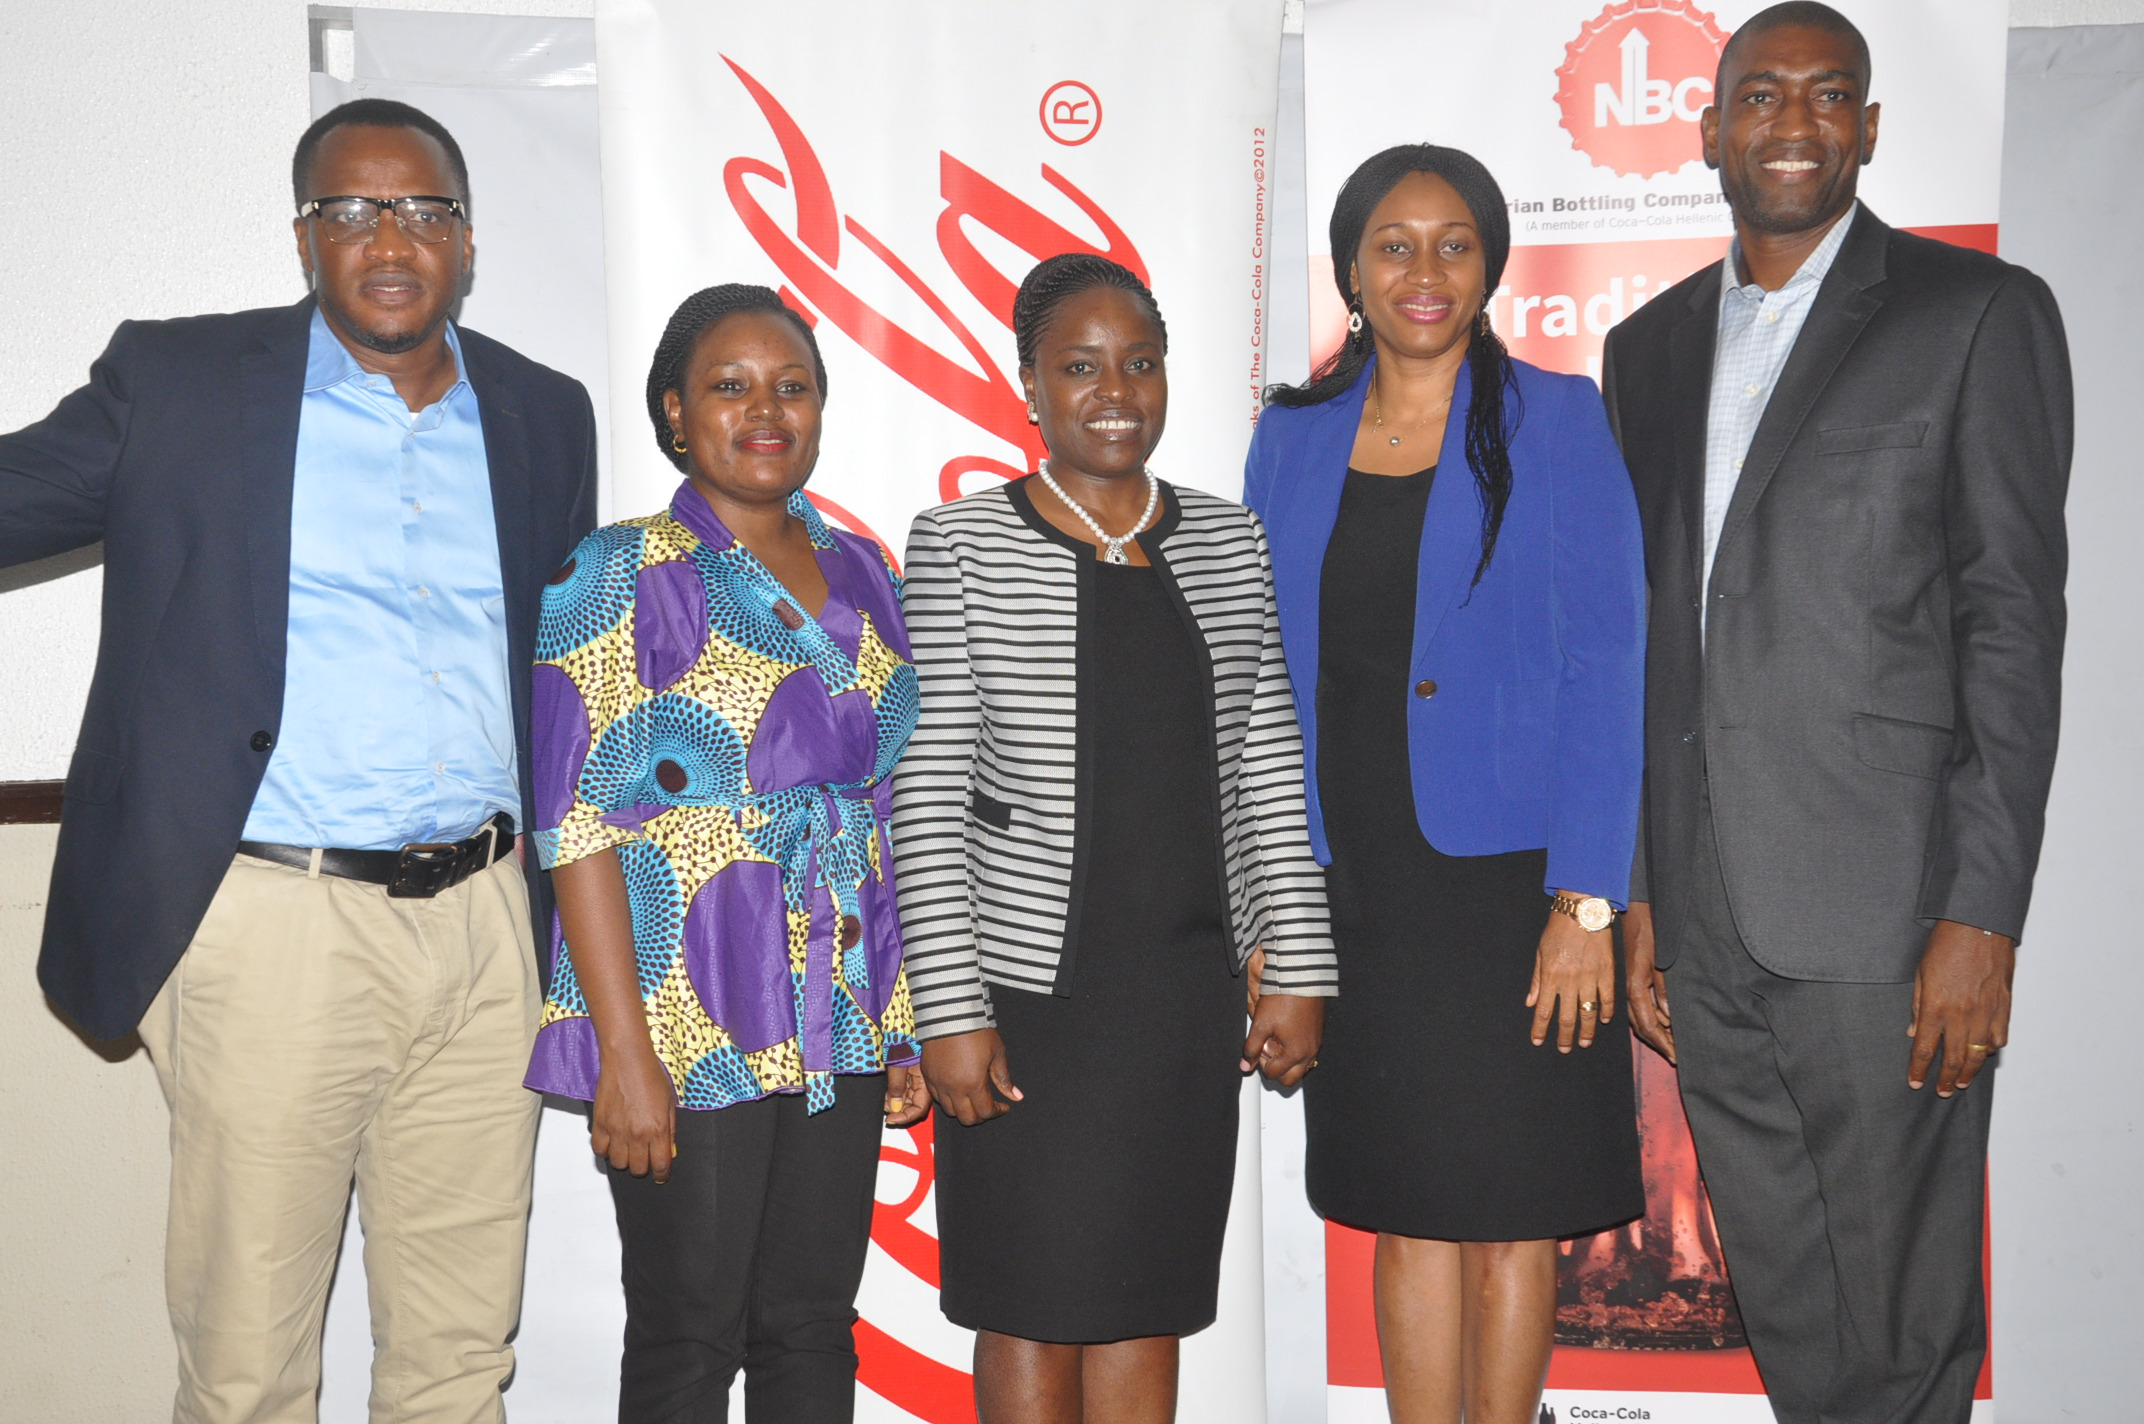 L-R; Community Affairs Manager, Coca-Cola, Emeka Mba, Communications Manager, Coca-Cola, Linda Okondo, The Director, Legal, Public Affairs and Communications, Nigerian Bottling Company Limited, (NBC), Sade Morgan, Public Affairs and Communications Manager, Coca-Cola, Nwamaka Onyemelukwe and Corporate Communications Manager, Nigerian Bottling Company Limited,  Akomen Omijeh  at the NBC/Coca-Cola system media parley held on Monday in Lagos.